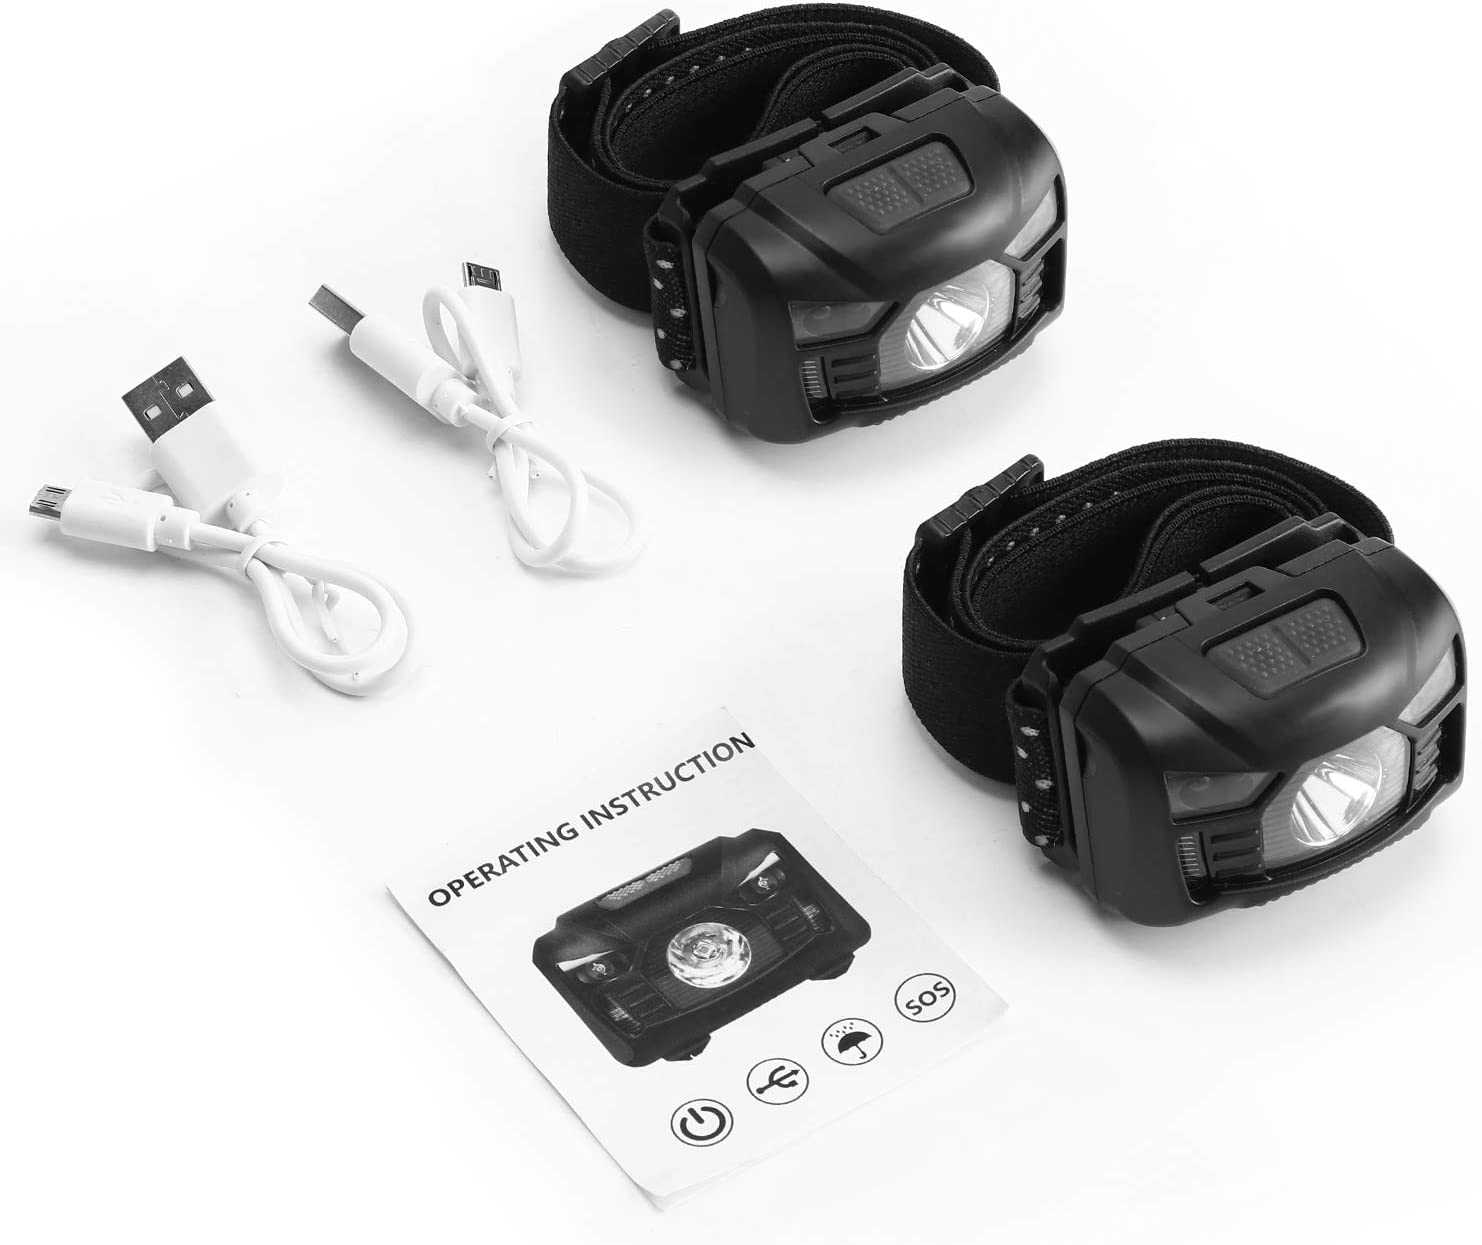 2 Pack of Rechargeable Headlamp, LED Headlamp, Head lamps for Adults, Flashlight with White Red Lights, USB Rechargeable Waterproof Head Lamp for Outdoor Camping Cycling Running Fishing - -